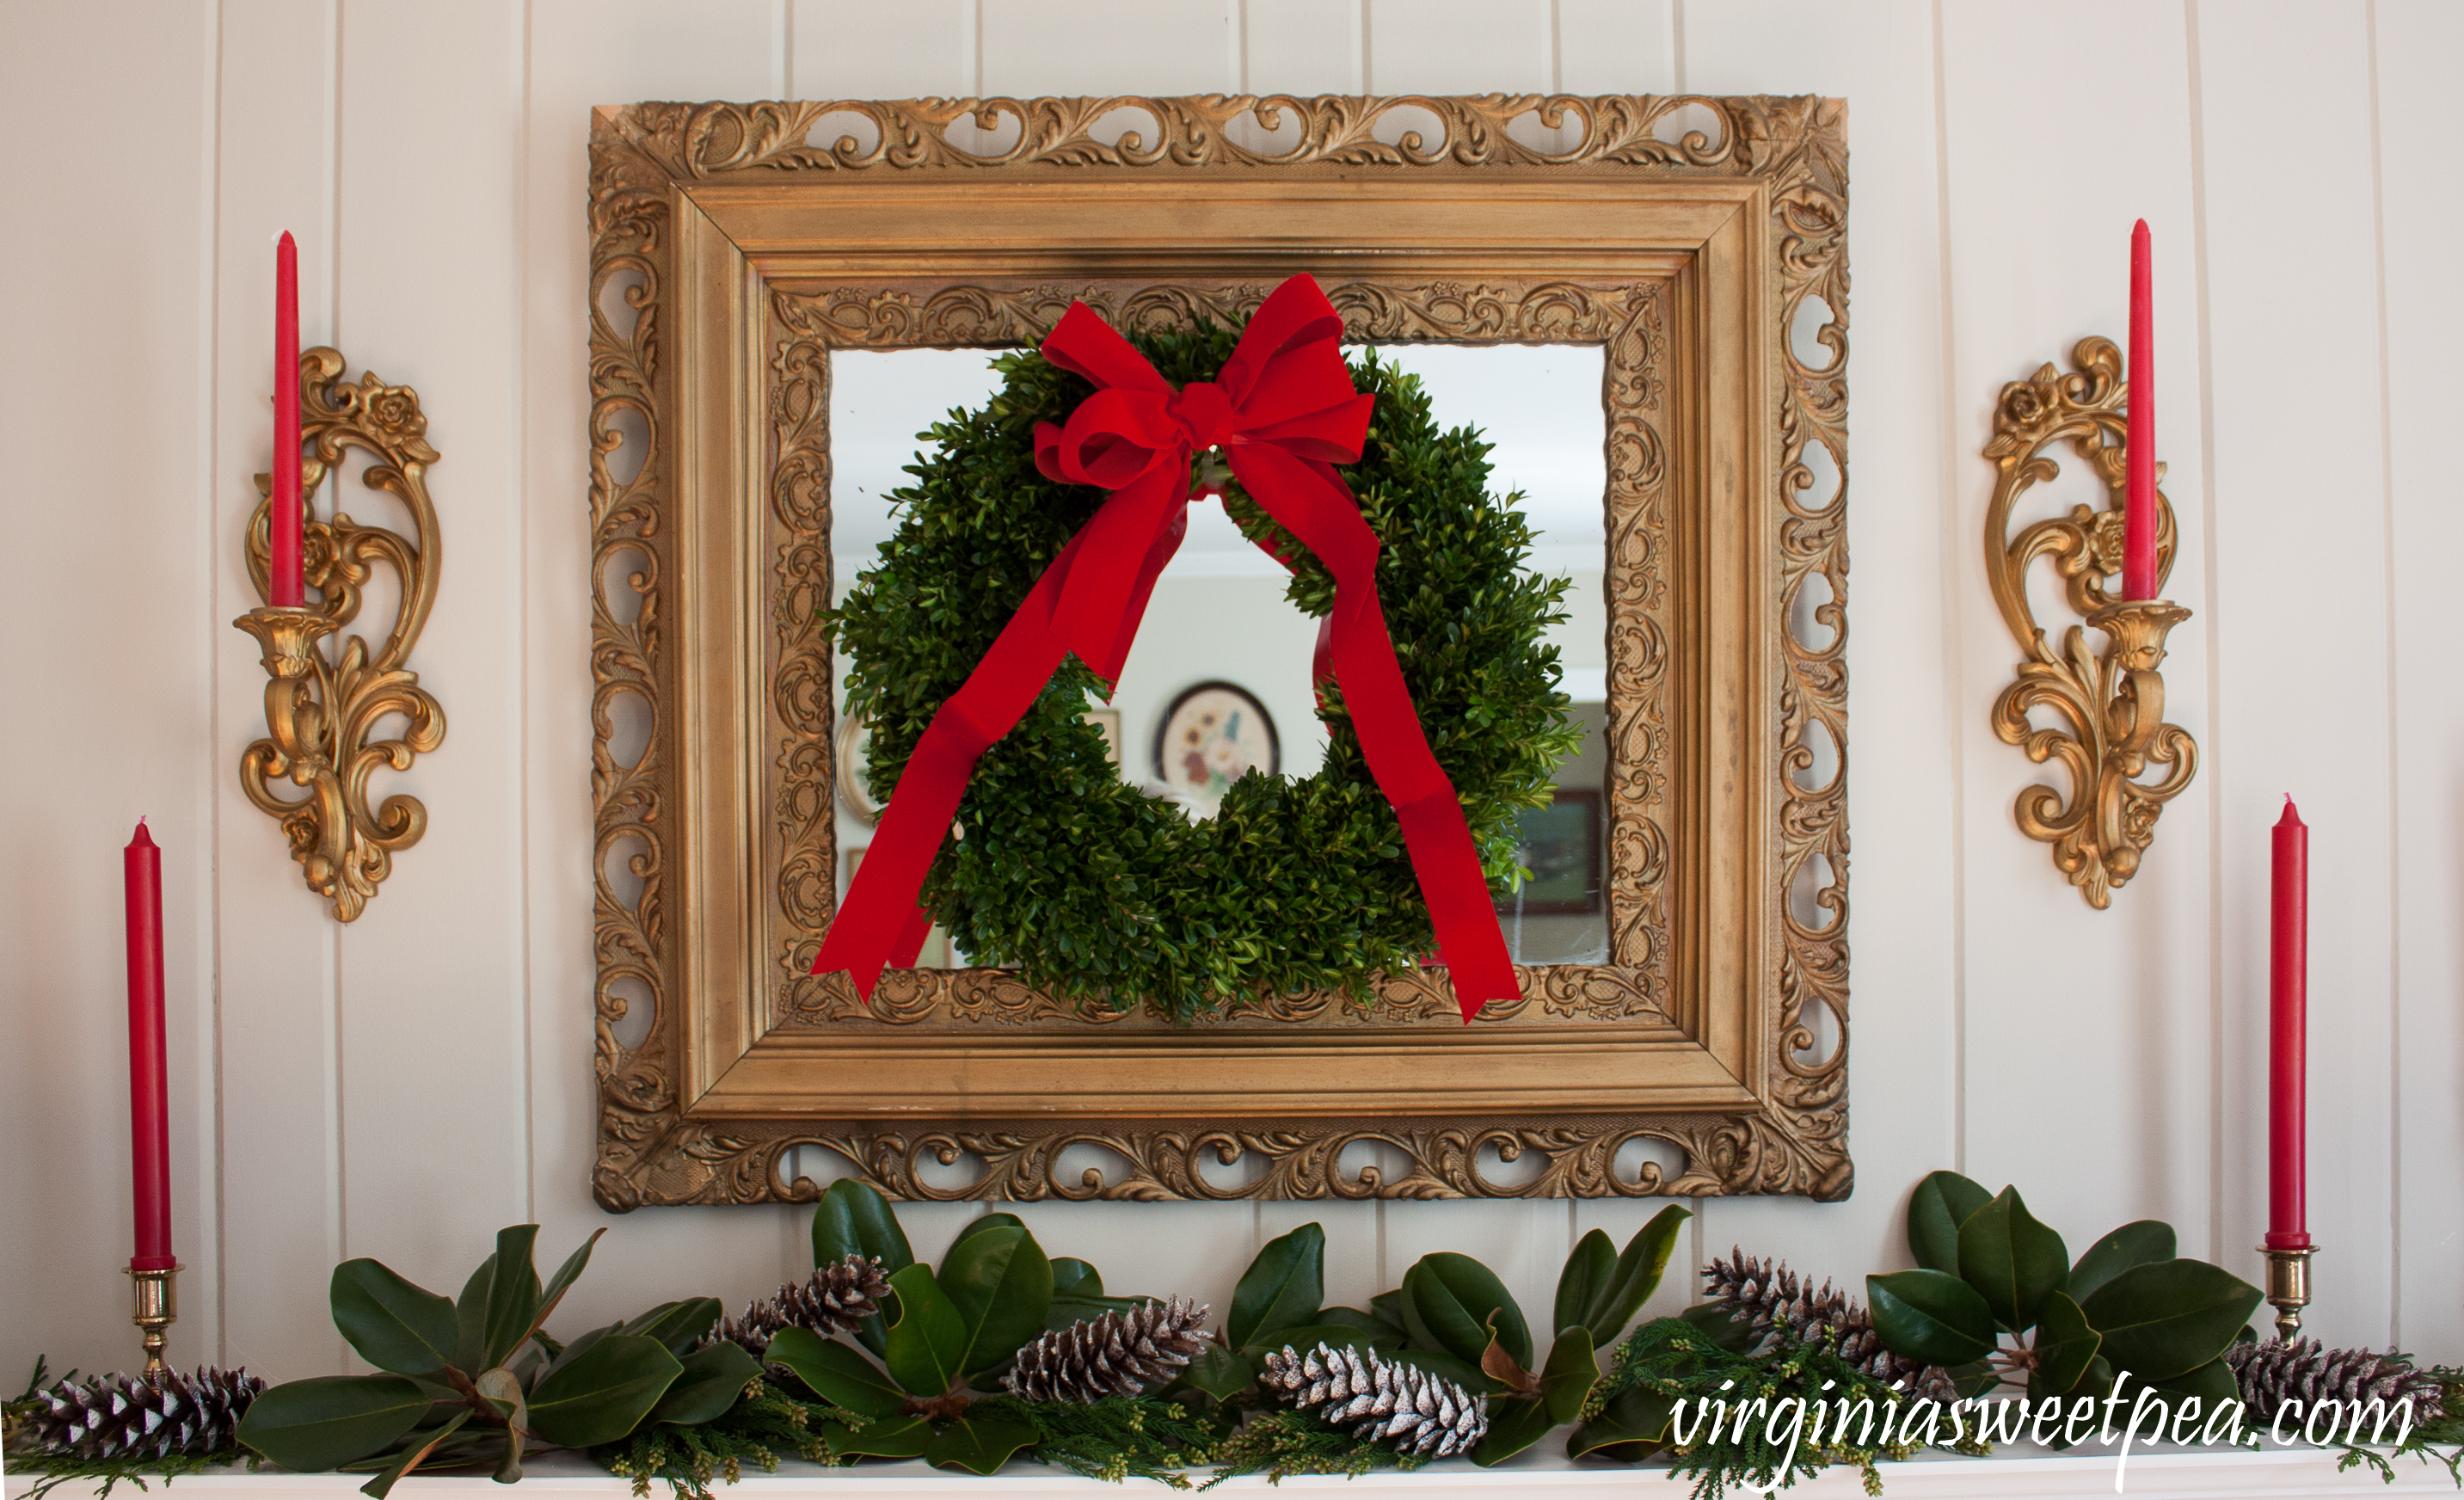 Traditional Southern Christmas Mantel - A mantel decorated for Christmas in traditional southern style. #christmas #christmashomedecor #christmasmantel #christmasideas #favoritechristmasideas